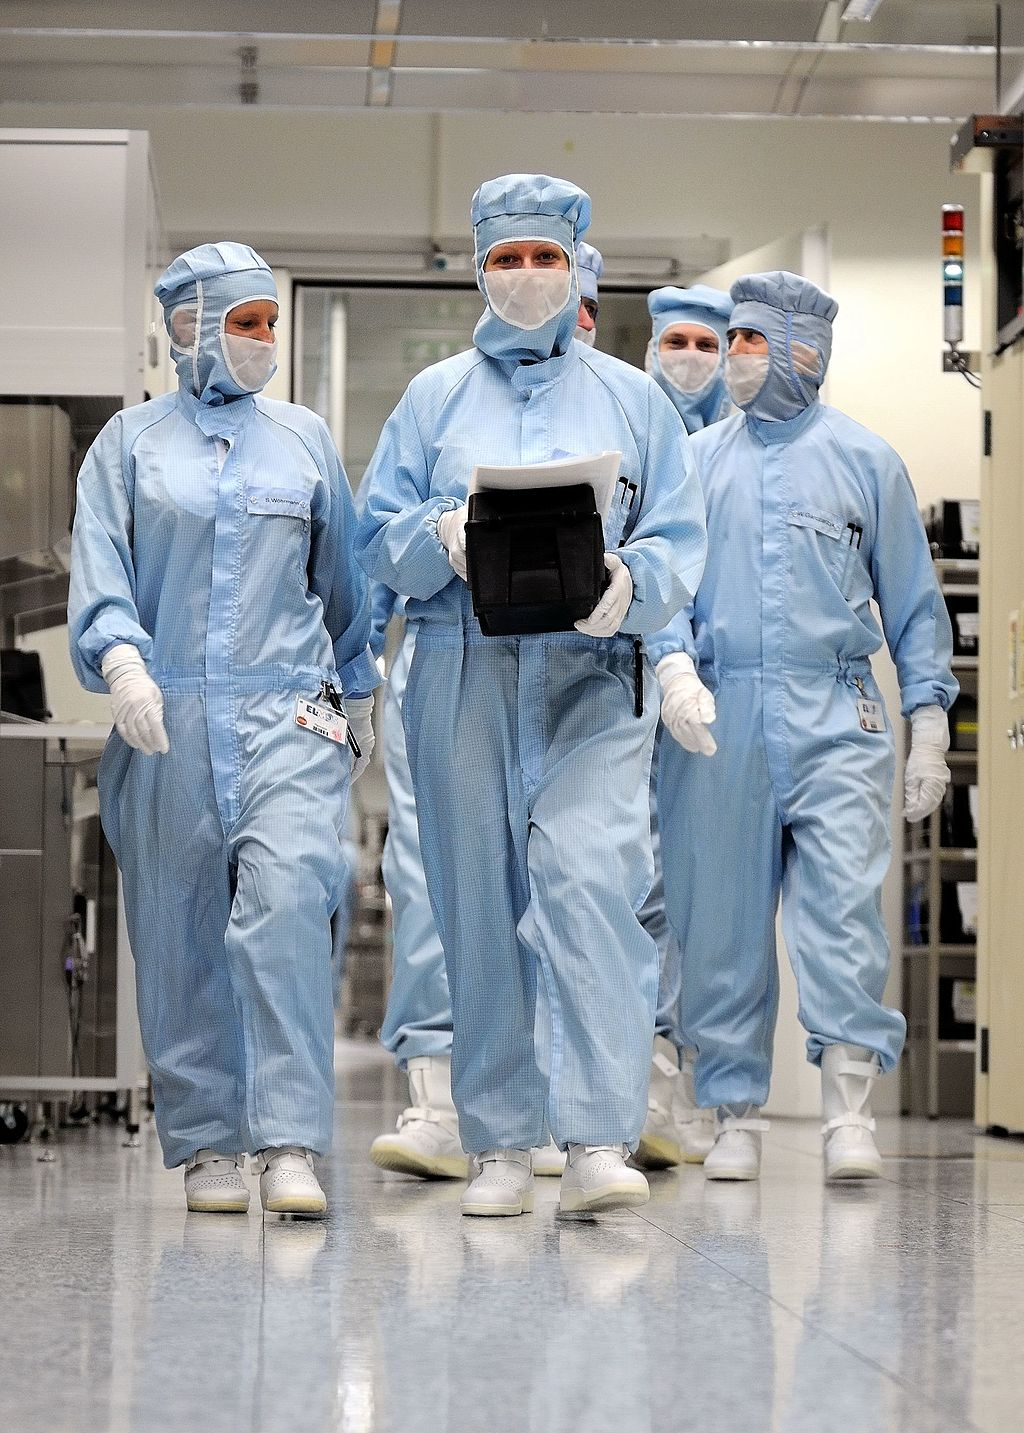 How Does a Cleanroom Work? It helps to know before establishing one in the first place...